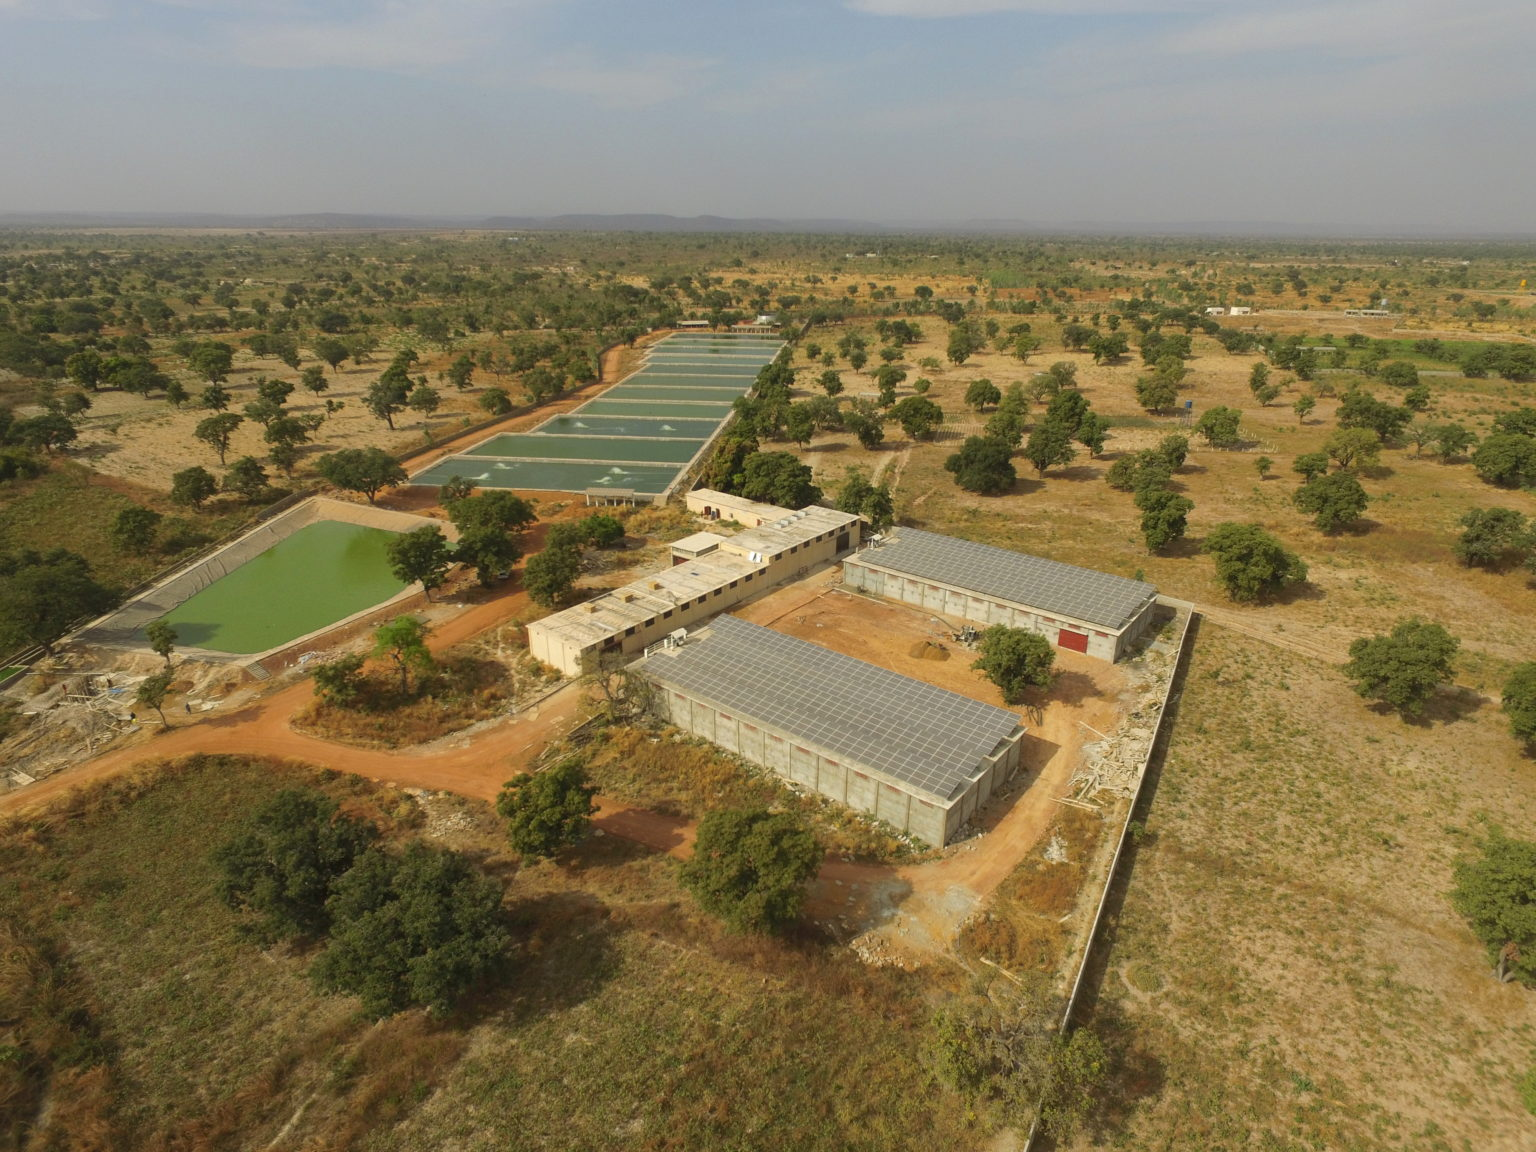 victron Energy & fronius: solar -powered agriclture in Mali